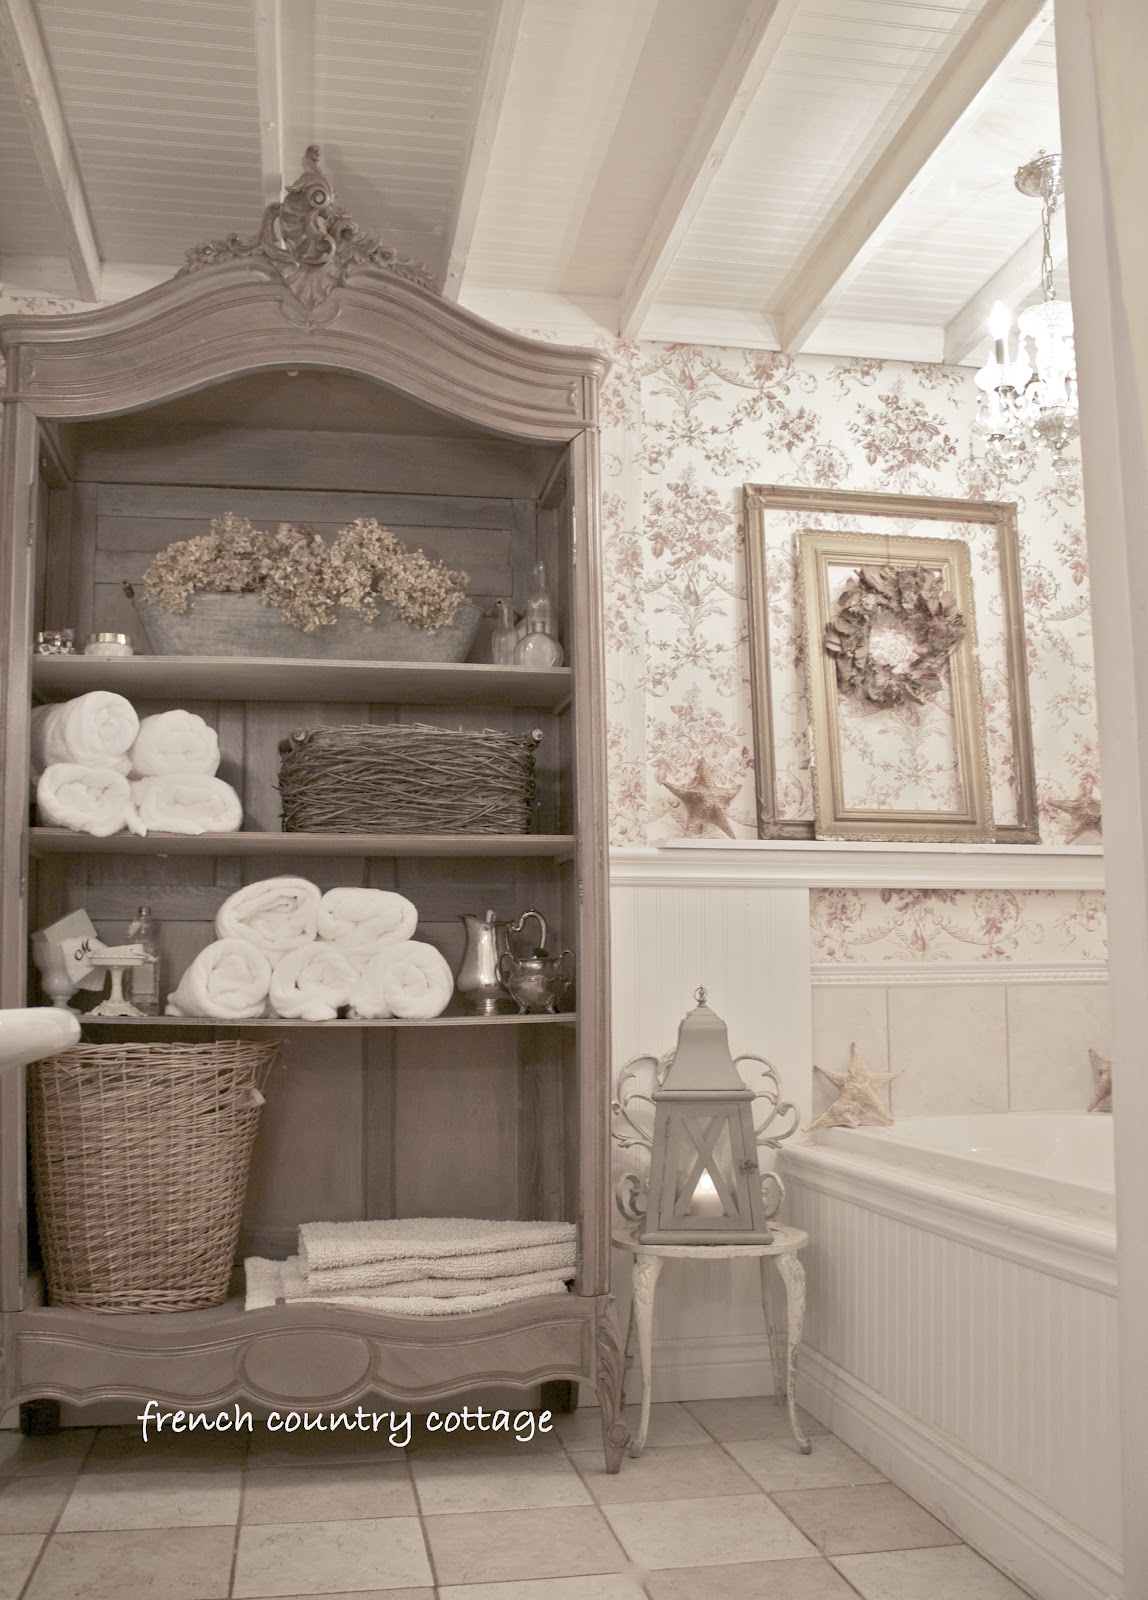 Cottage bathroom inspirations french country cottage for Country bathroom ideas